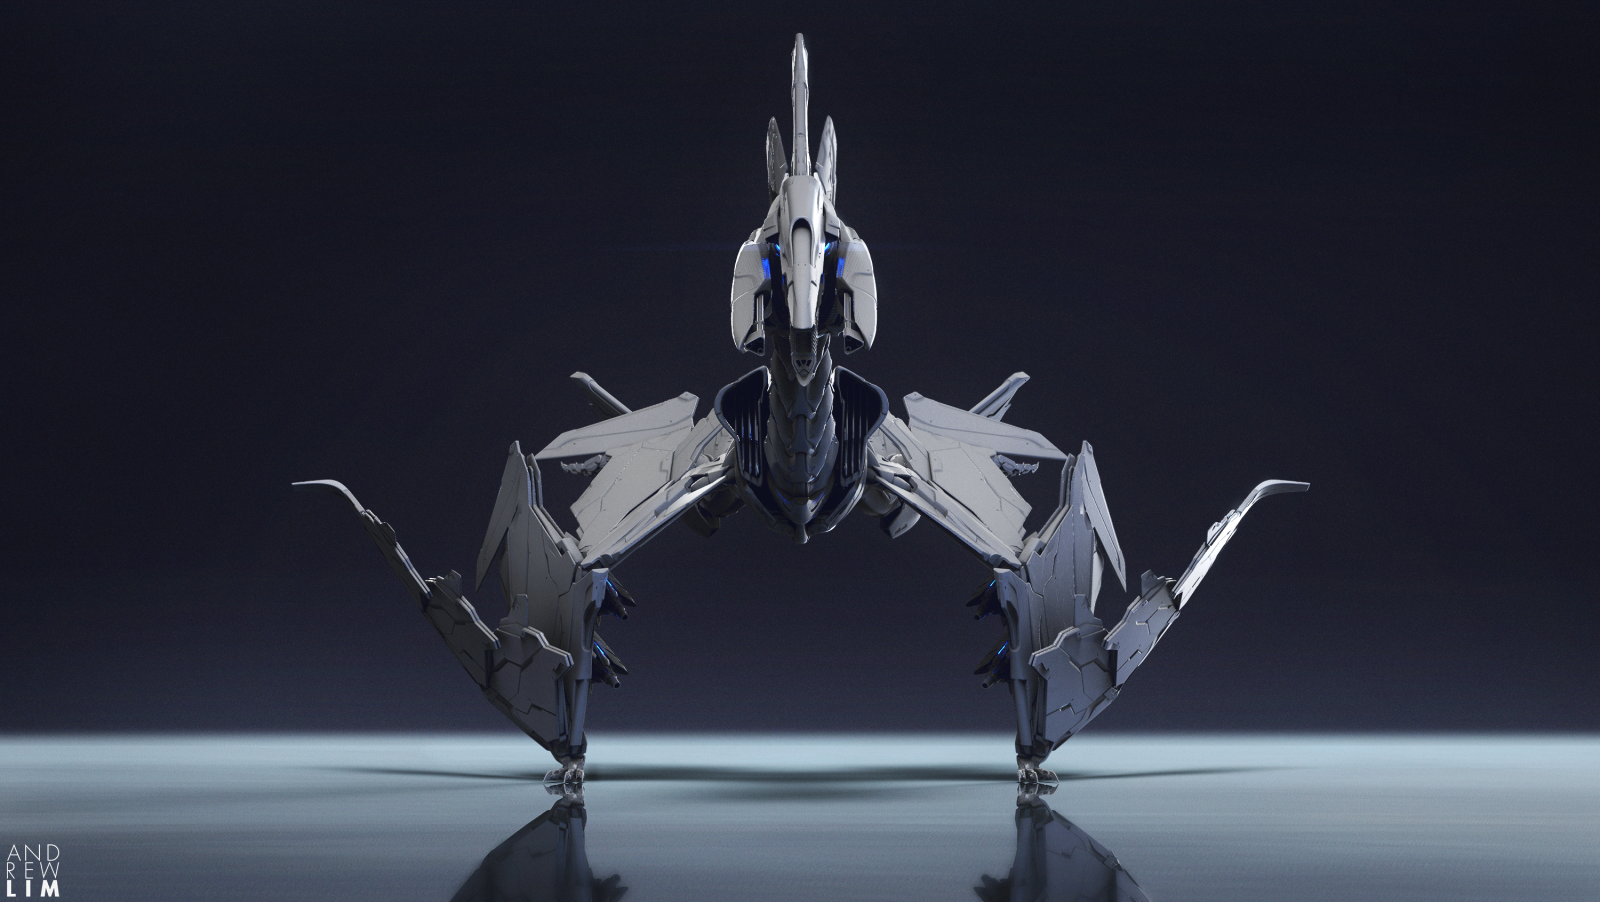 59d9e925e9abf_ColossalGlider_Planche_Frontview_01_13k.png